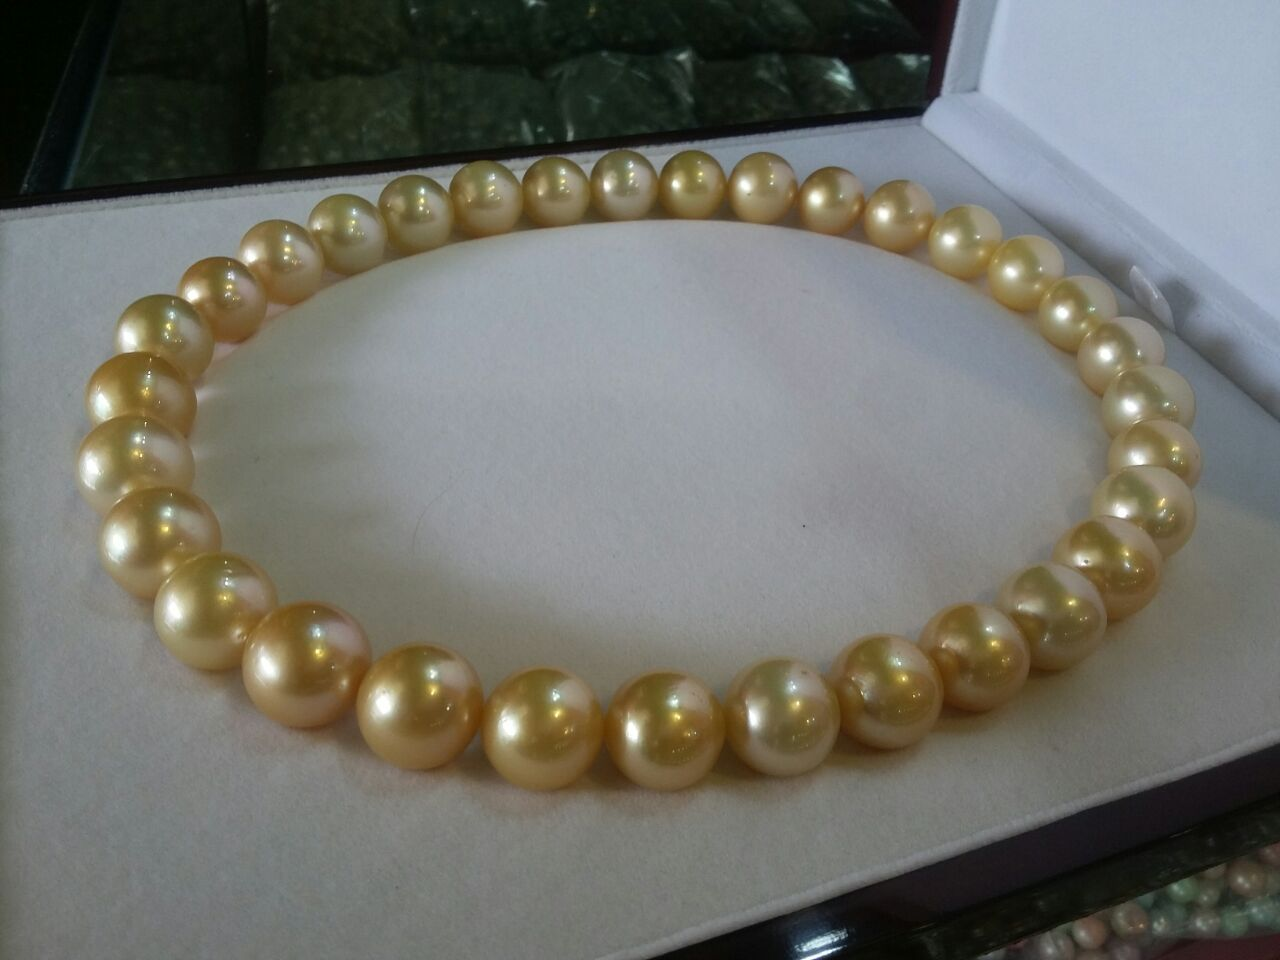 BIG Size Original Loose South Sea Pearls (BIG-01)